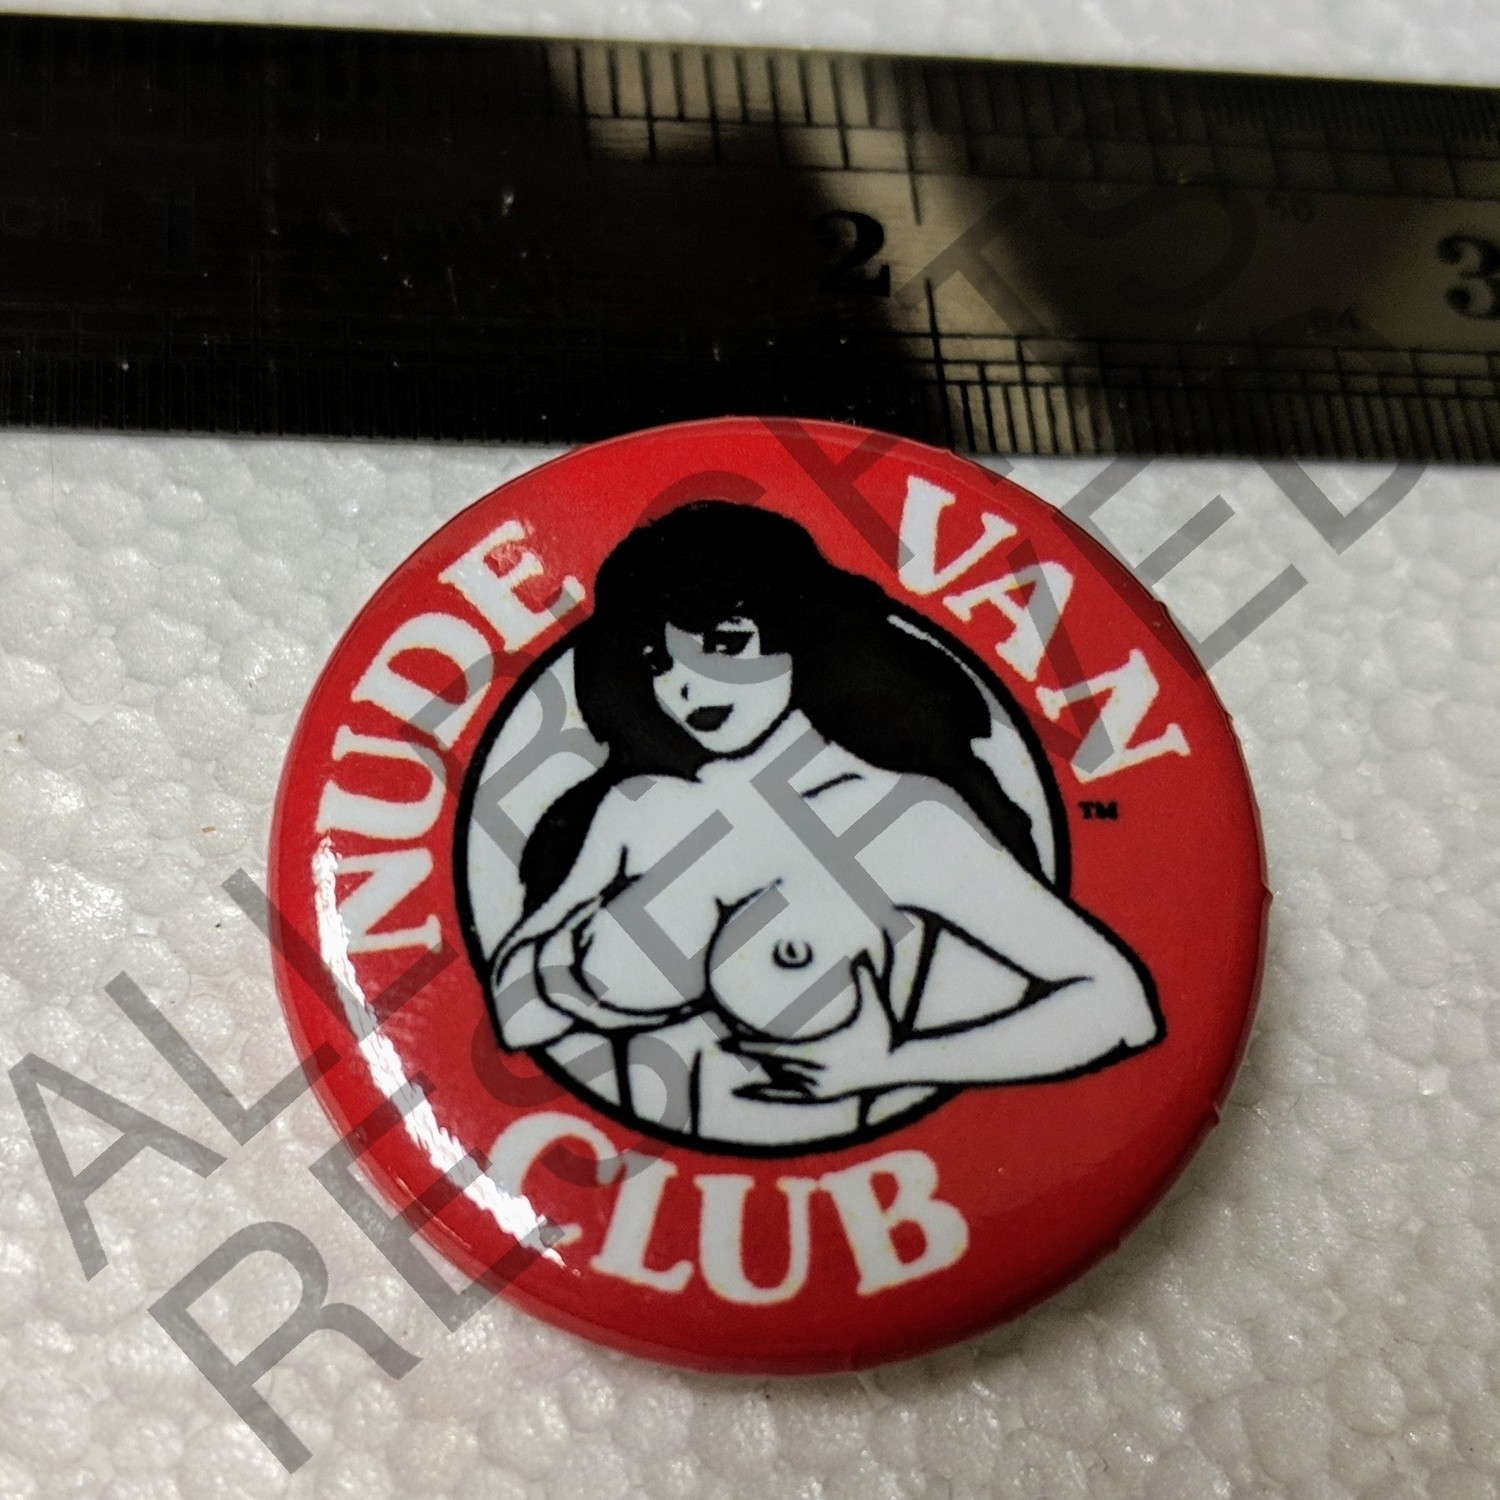 Nude Van Club Pin